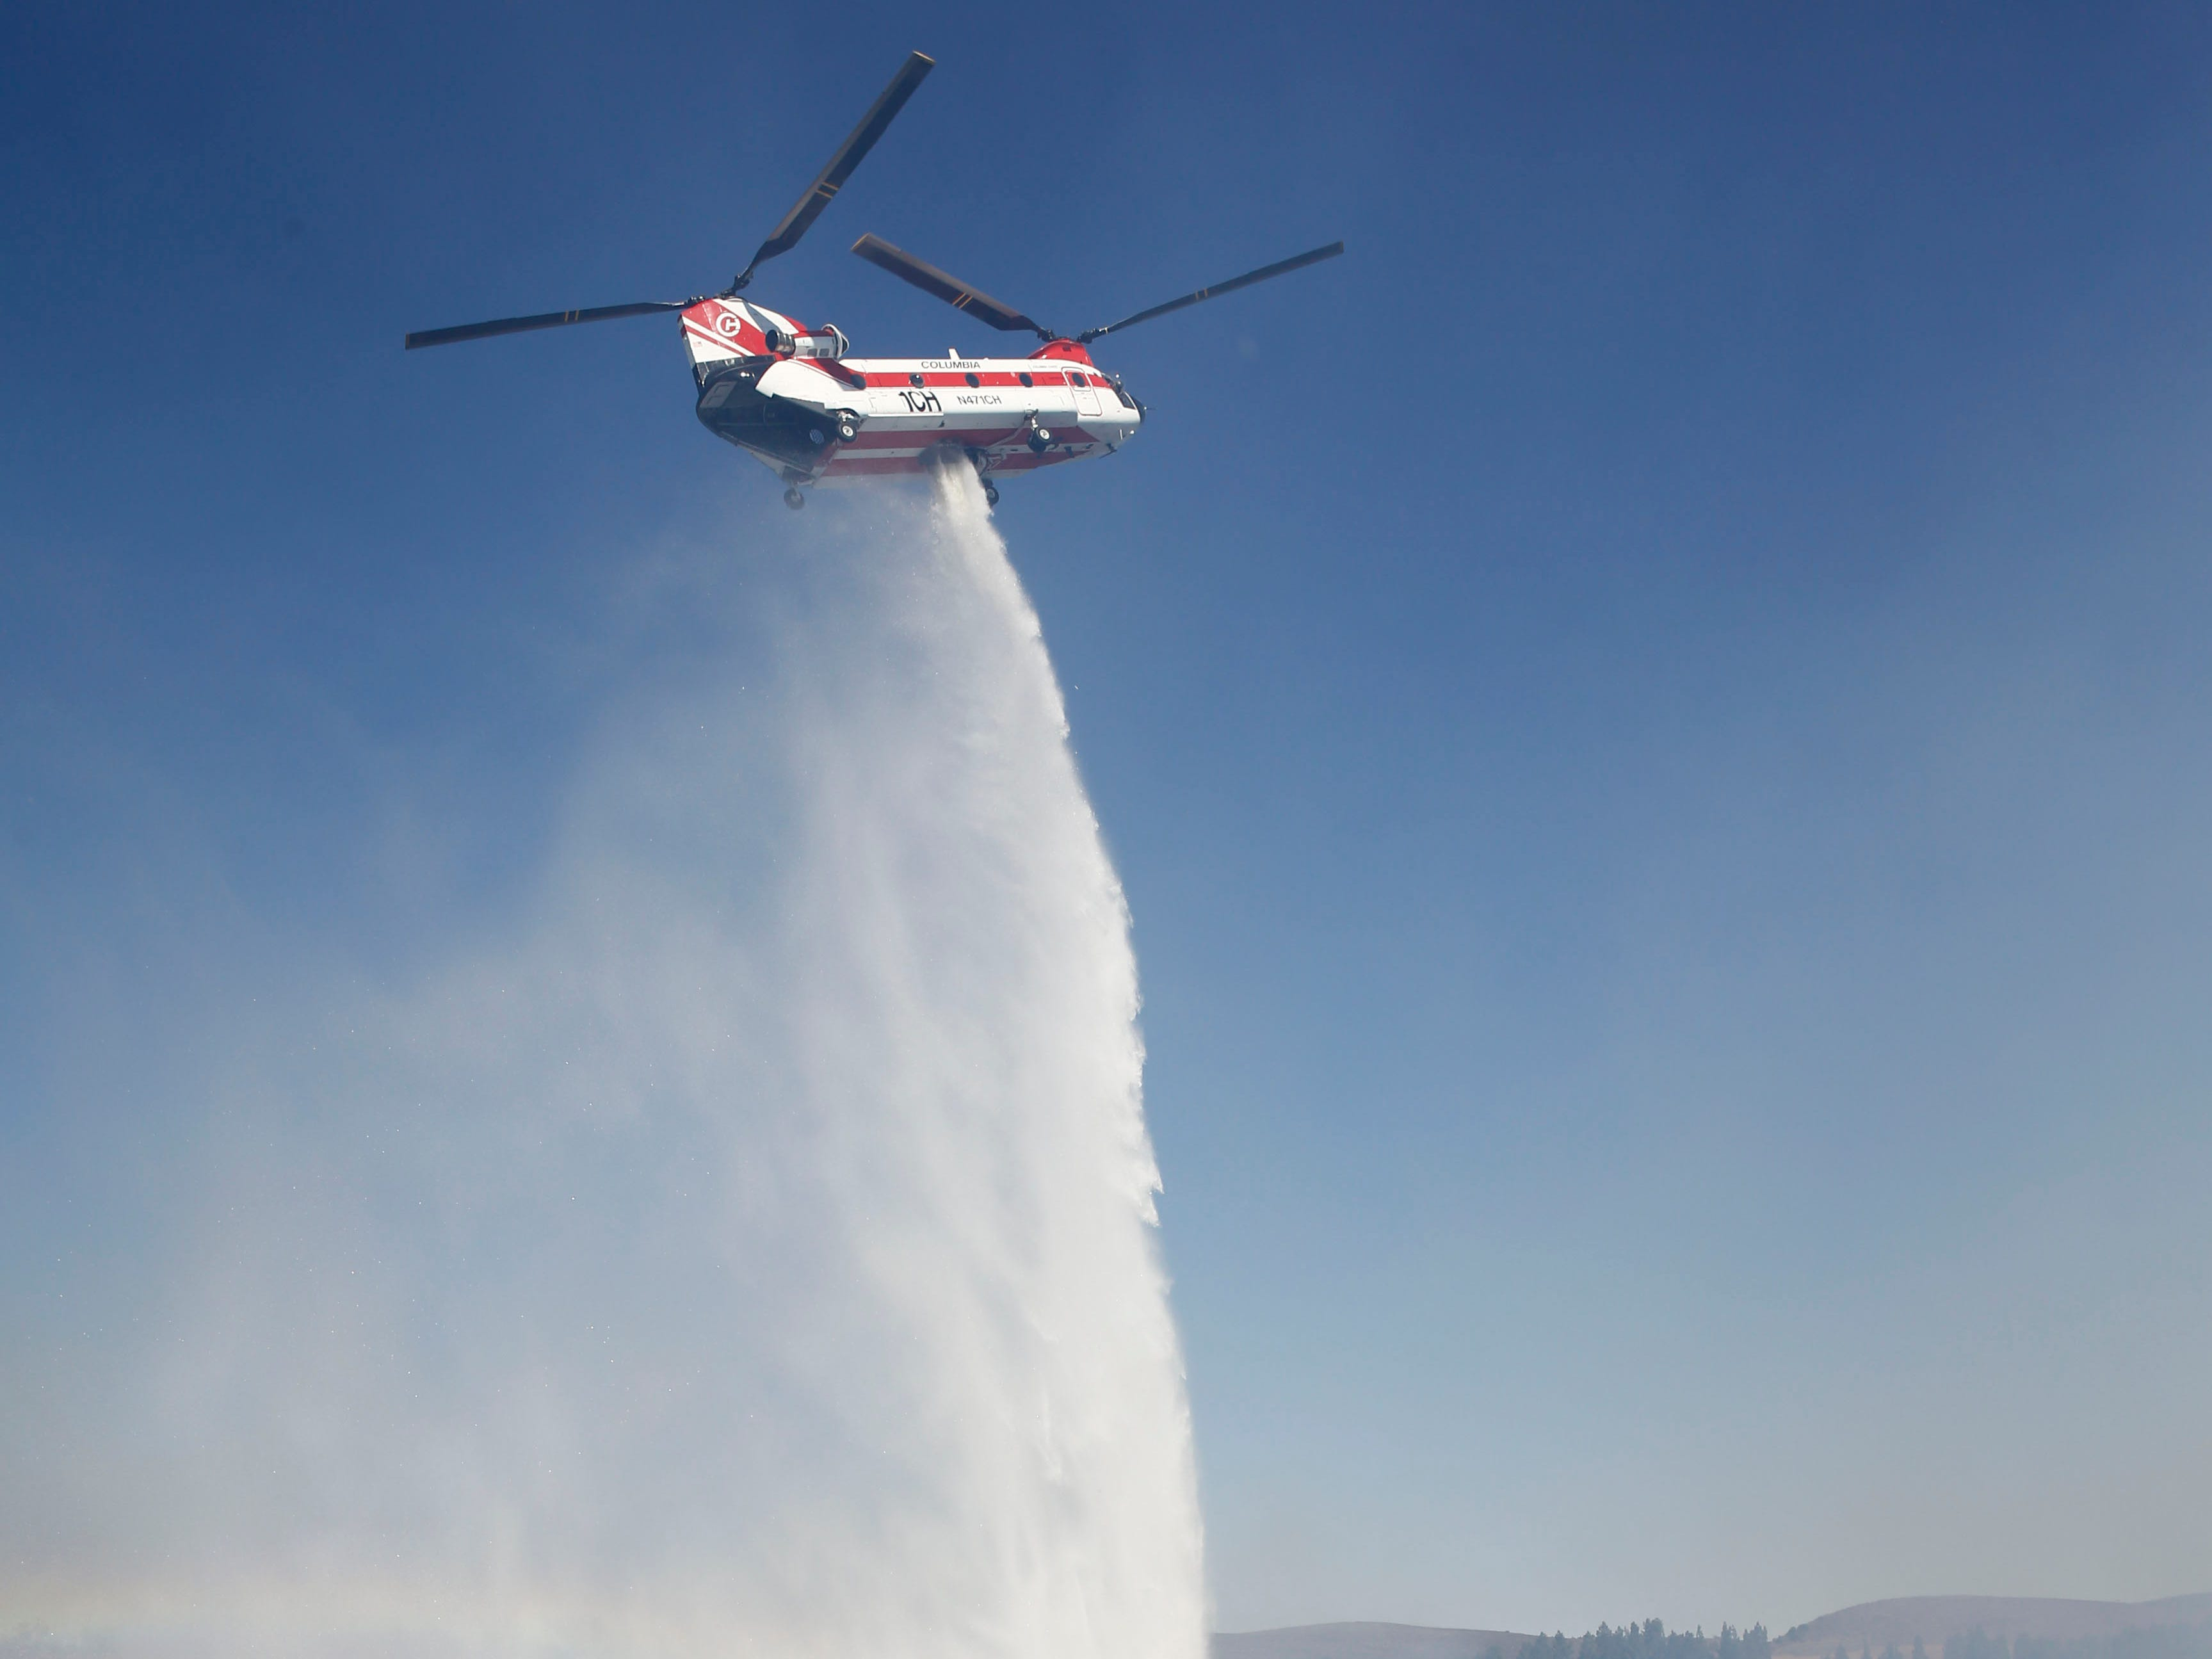 A helicopter drops water on the Hill Fire in Thousand Oaks, Calif. on Nov. 12, 2018.